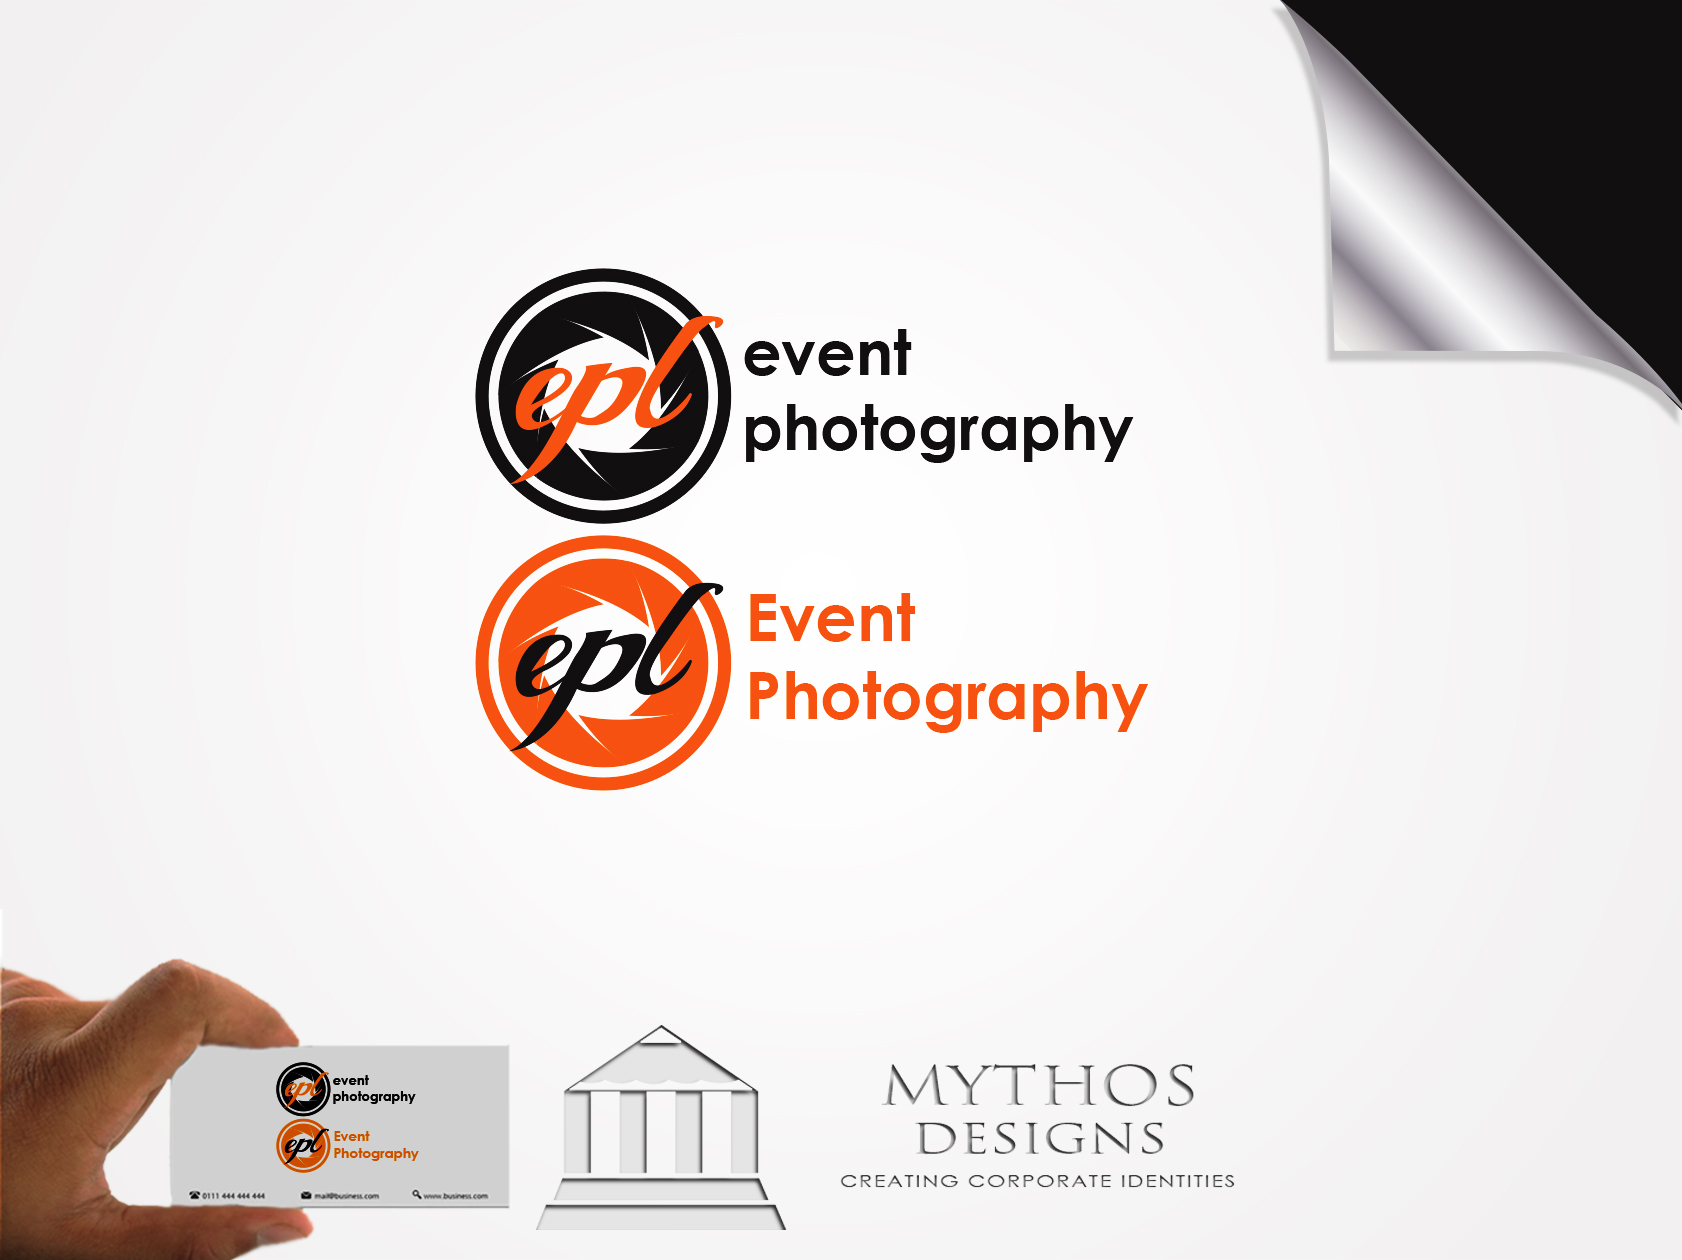 Logo Design by Mythos Designs - Entry No. 182 in the Logo Design Contest New Logo Design for EPL Event Photography.